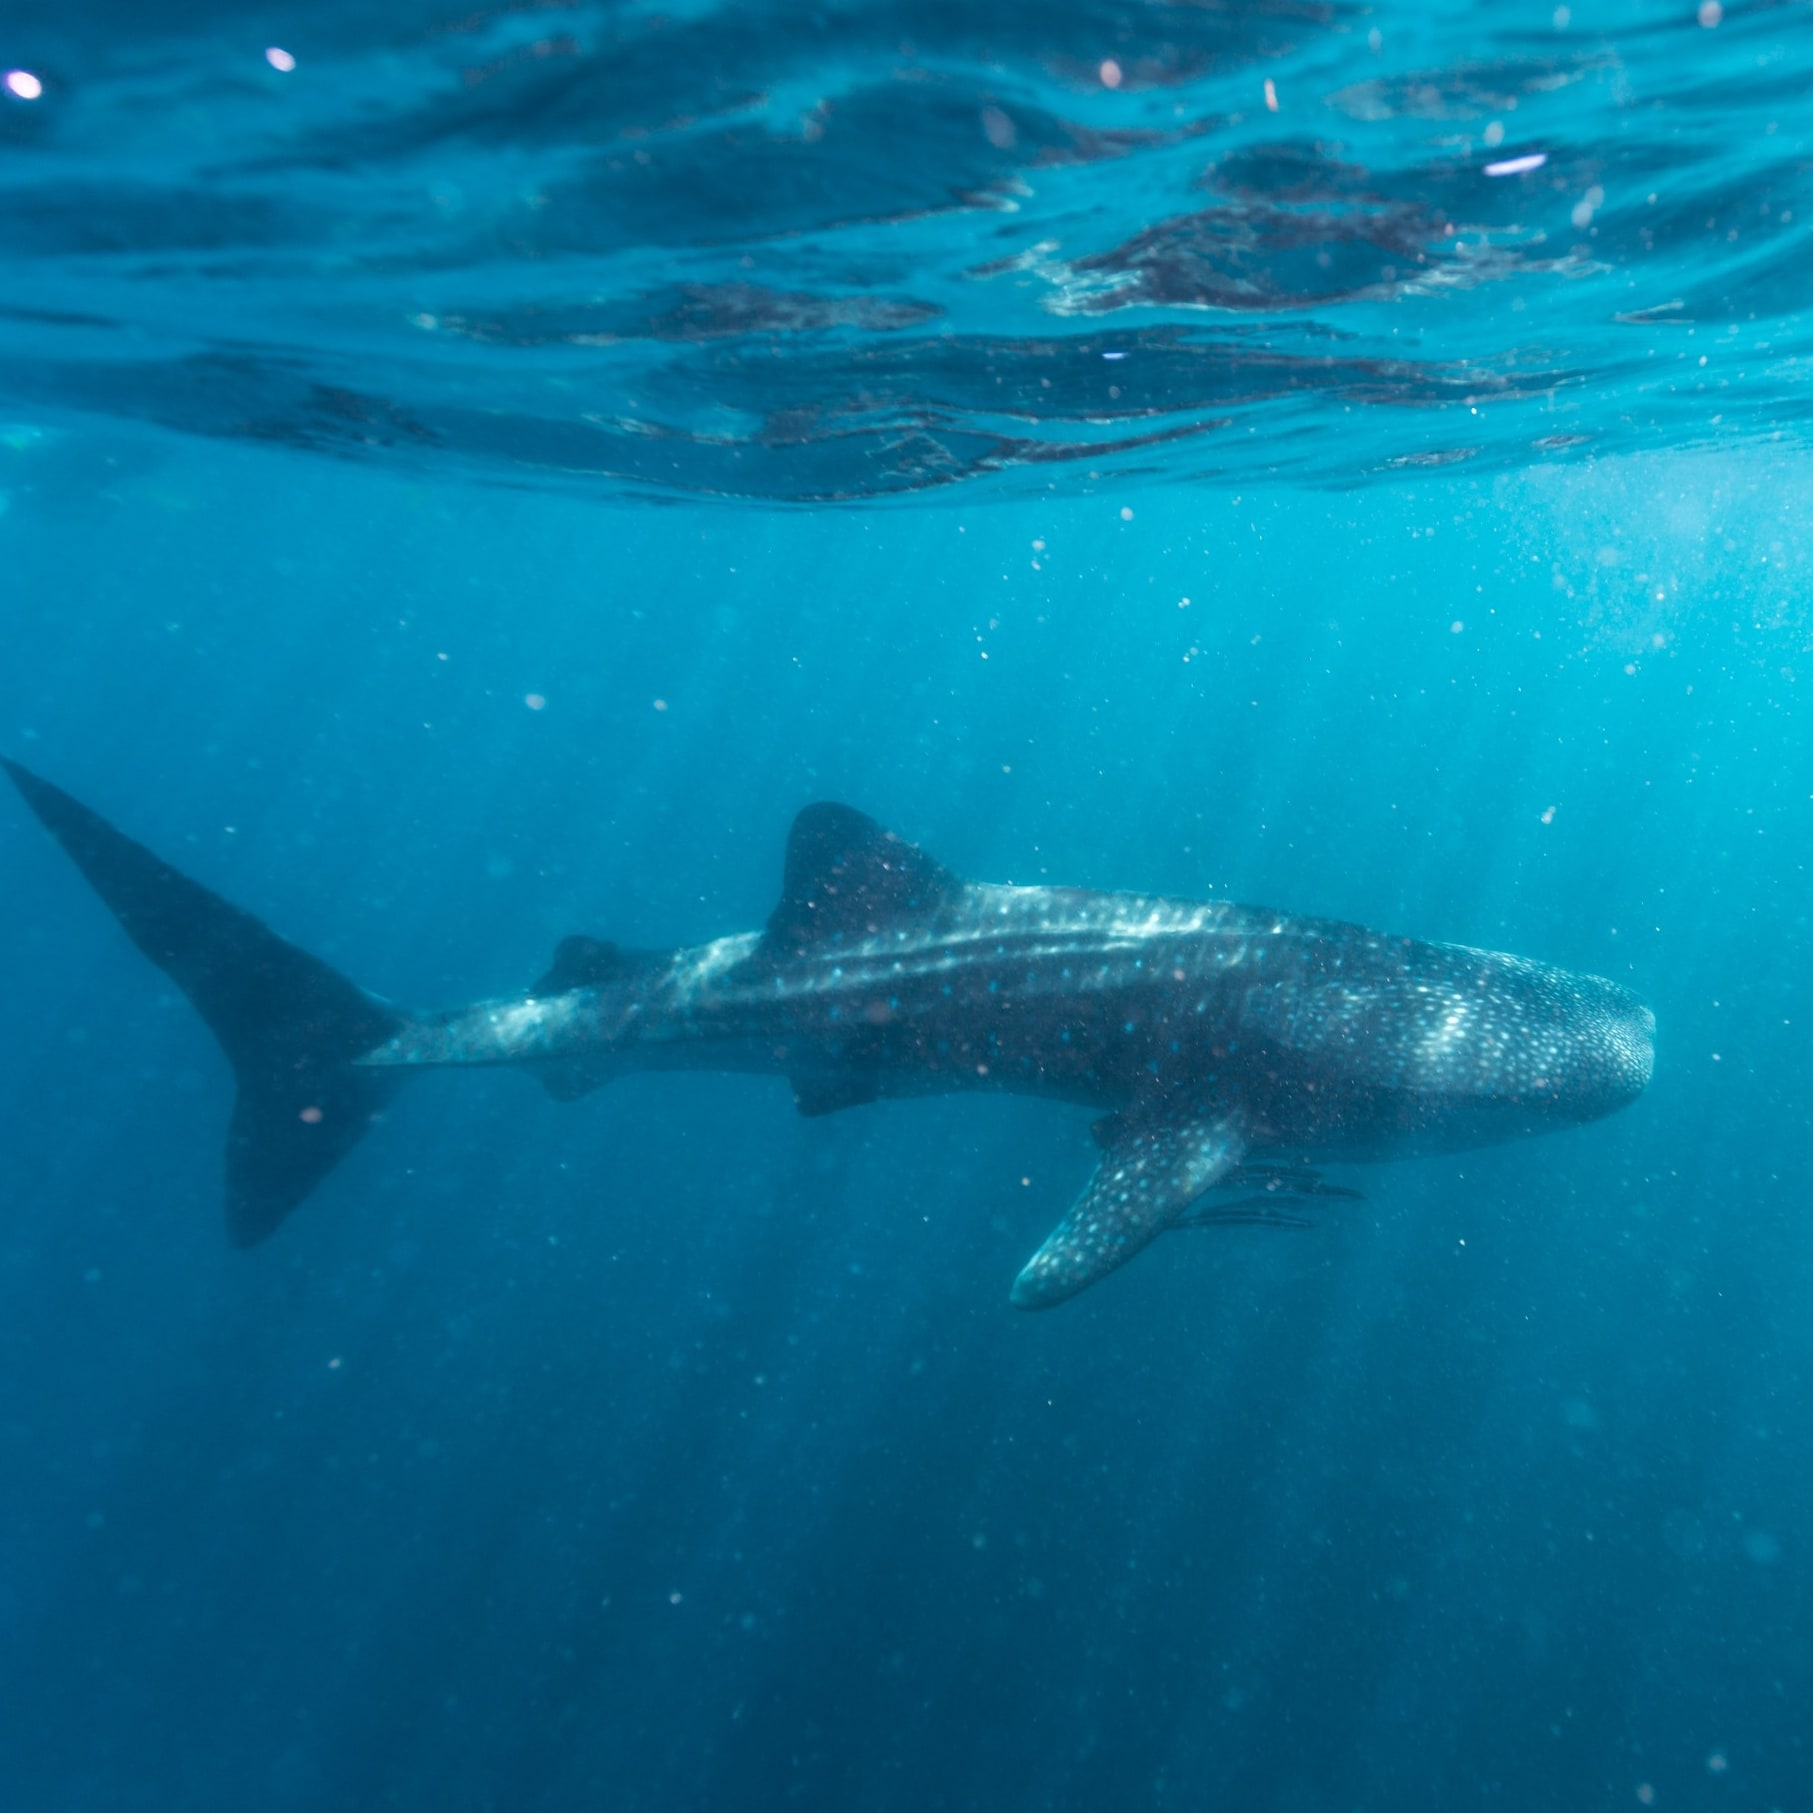 Whale shark at Ningaloo Reef © Tourism Western Australia